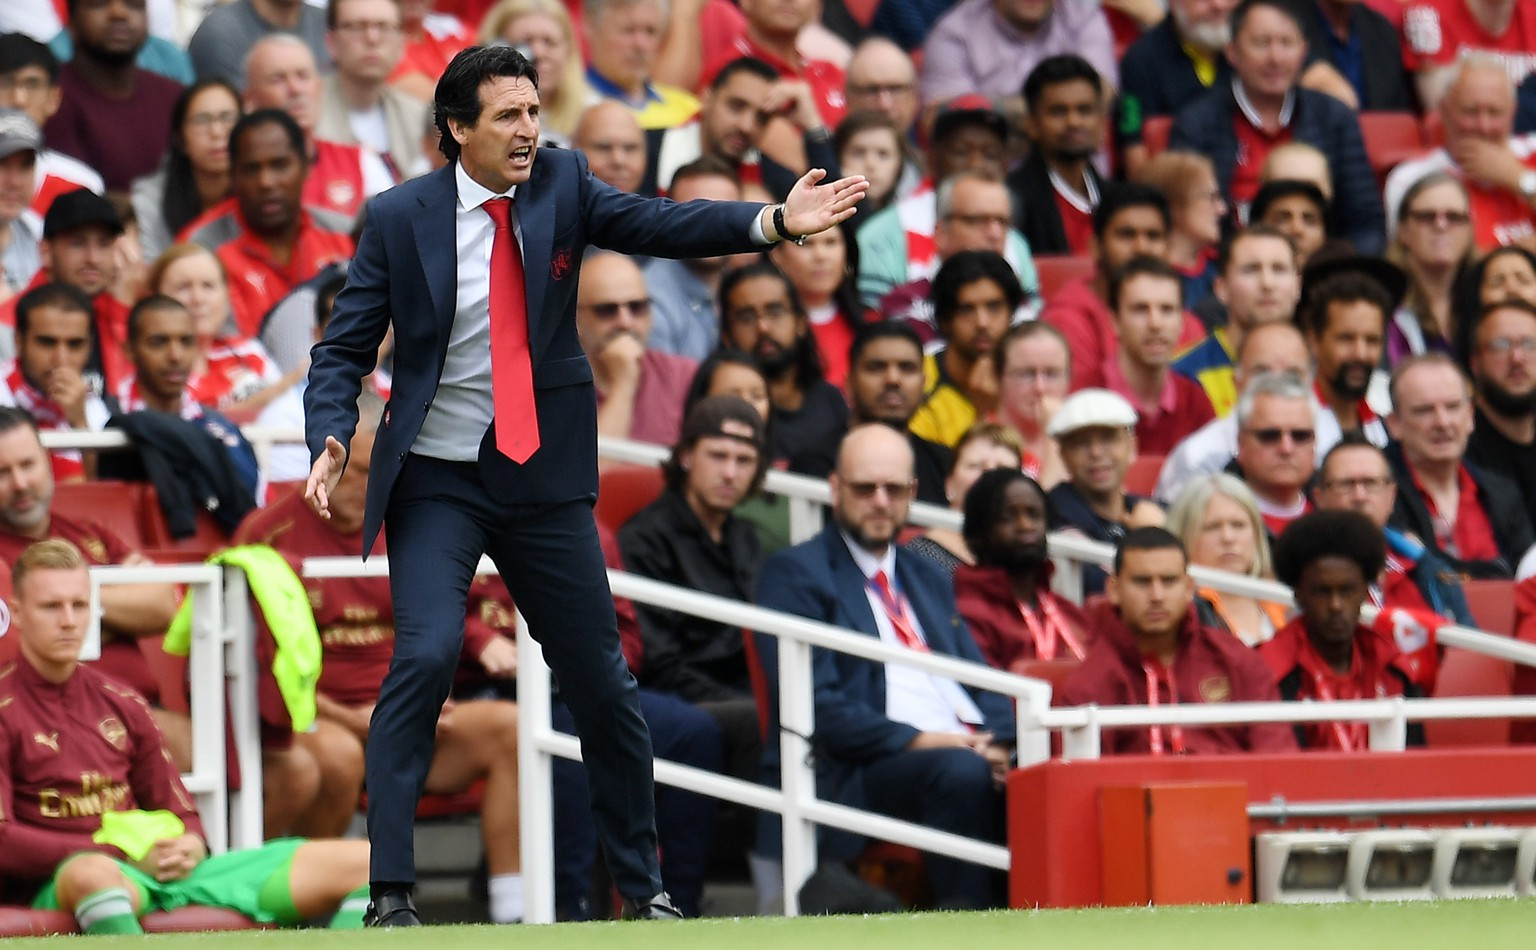 epa06946023 Arsenal manager Unai Emery reacts during the English Premier League soccer match between Arsenal FC and Manchester City at the Emirates Stadium in London, Britain, 12 August 2018.  EPA/ANDY RAIN EDITORIAL USE ONLY. No use with unauthorized audio, video, data, fixture lists, club/league logos or 'live' services. Online in-match use limited to 75 images, no video emulation. No use in betting, games or single club/league/player publications.